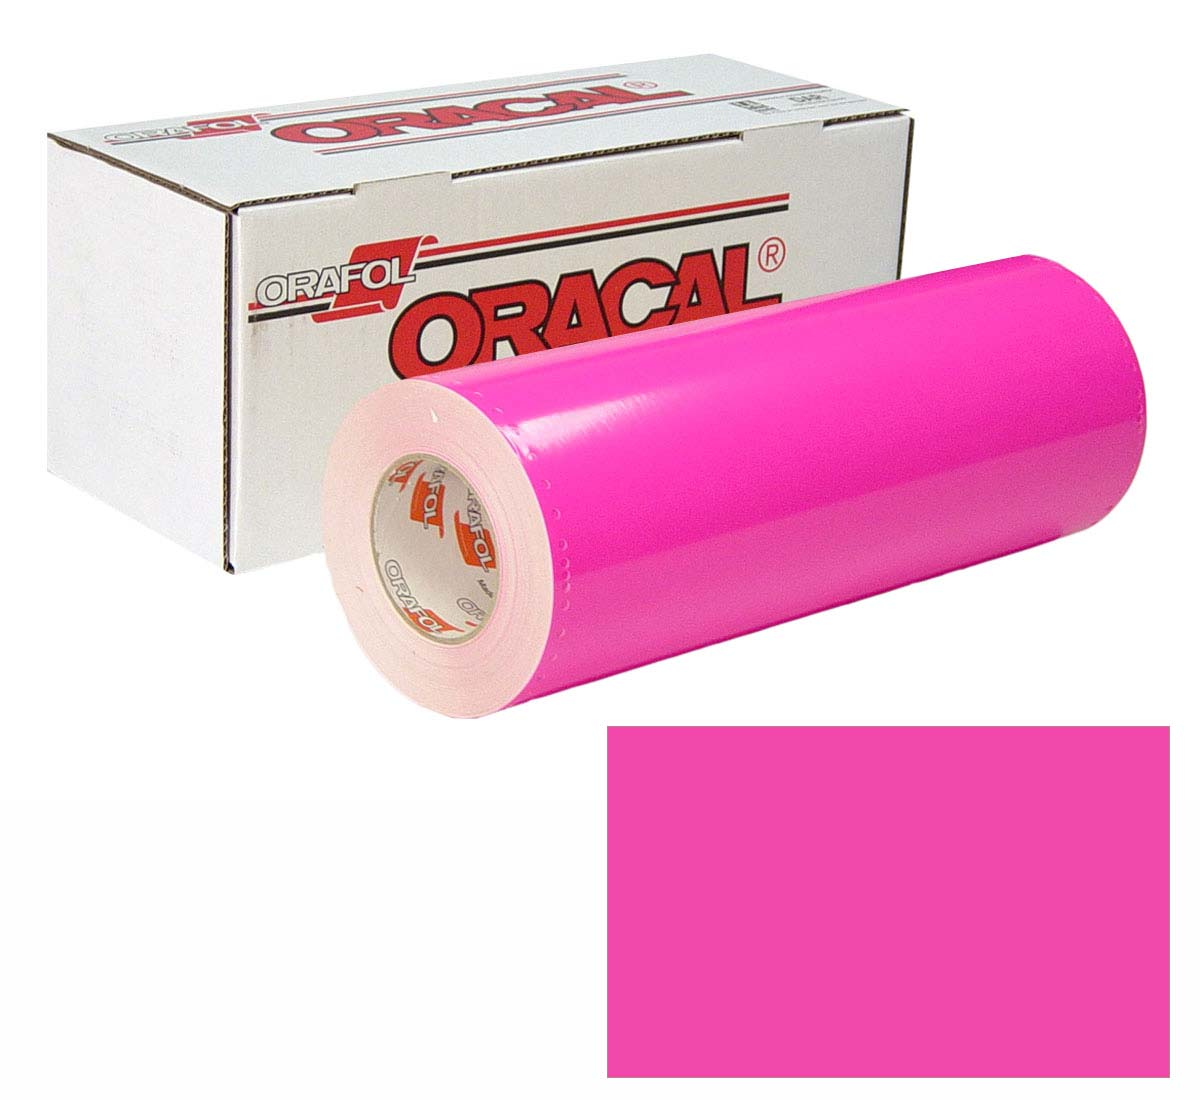 ORACAL 6510 Fluor 15In X50Yd 046 Pink